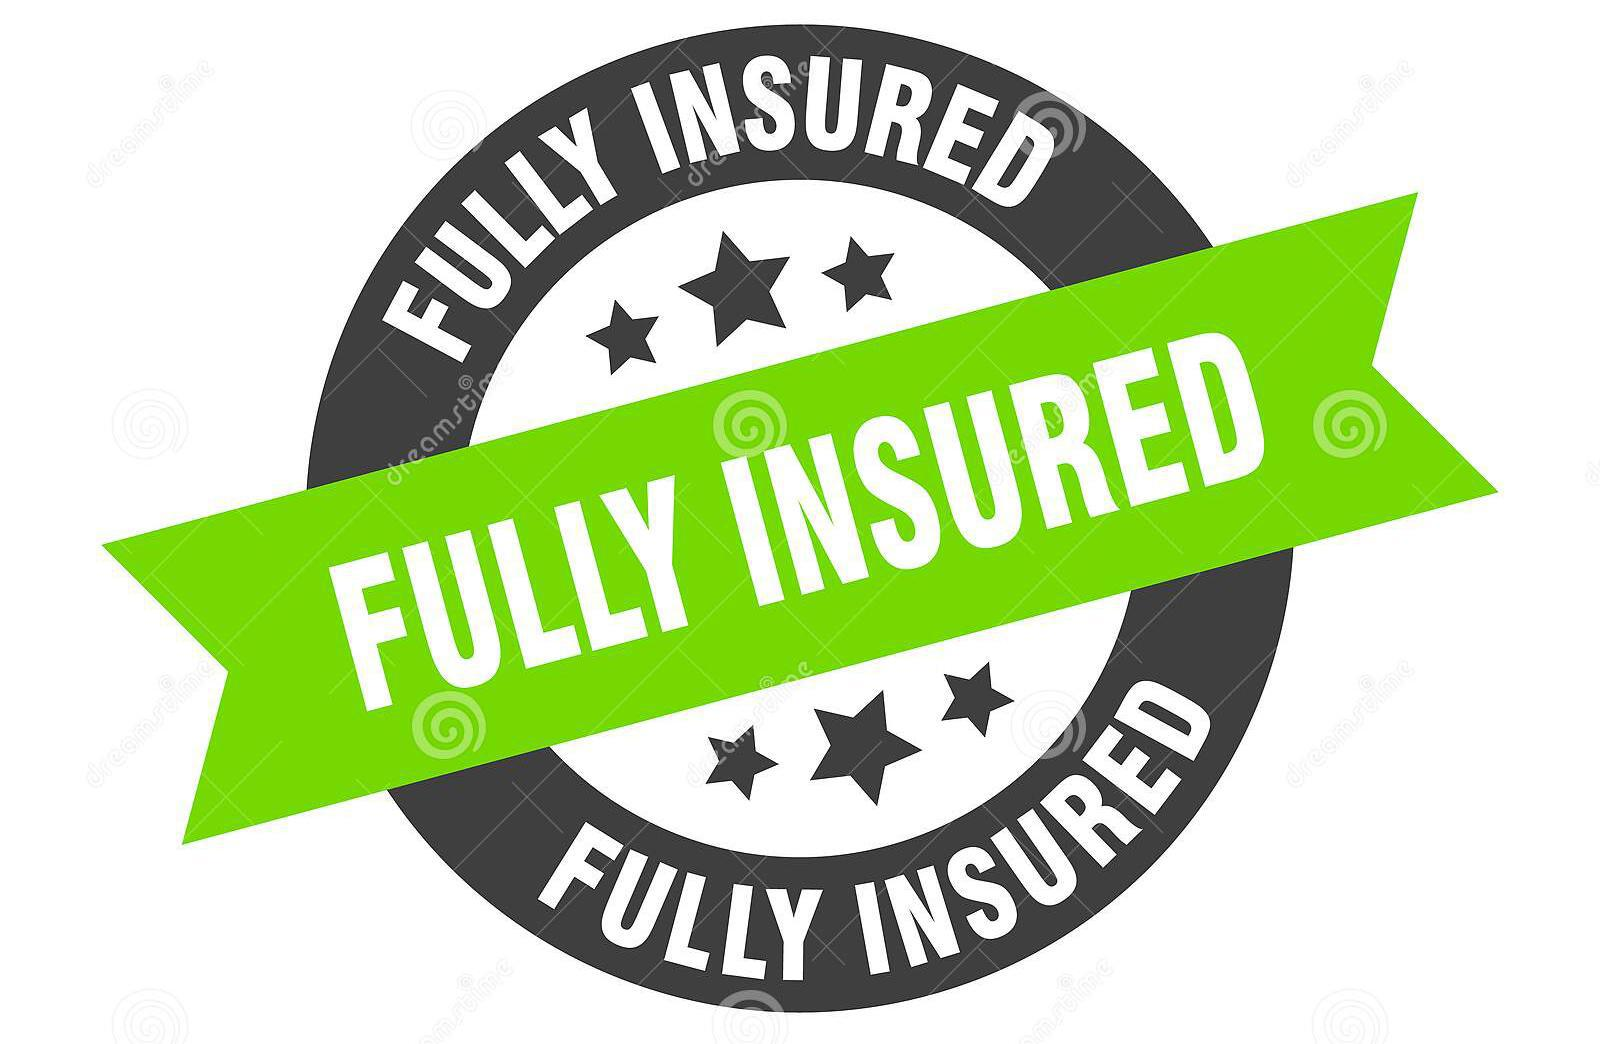 A graphic guaranteeing that they are fully insured and the customers are protected.